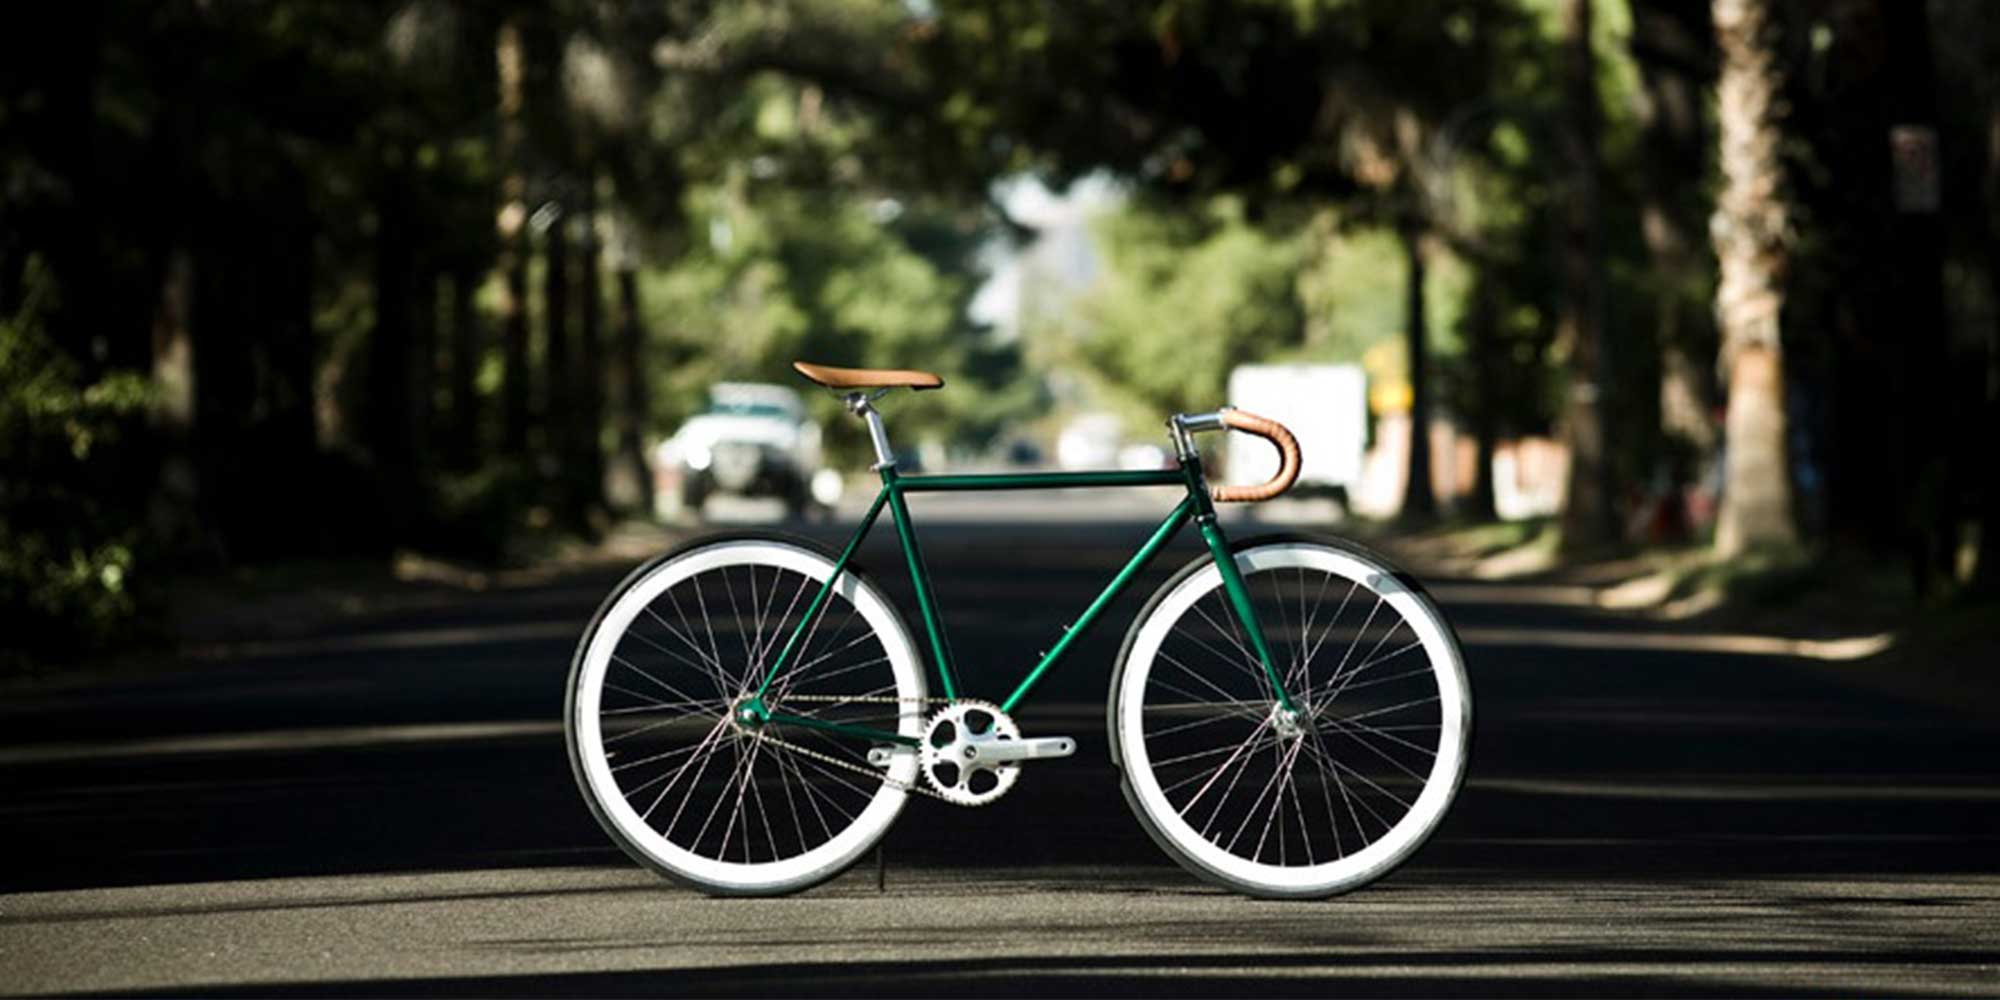 Singlespeed Bikes Under $600 - Hey Gents